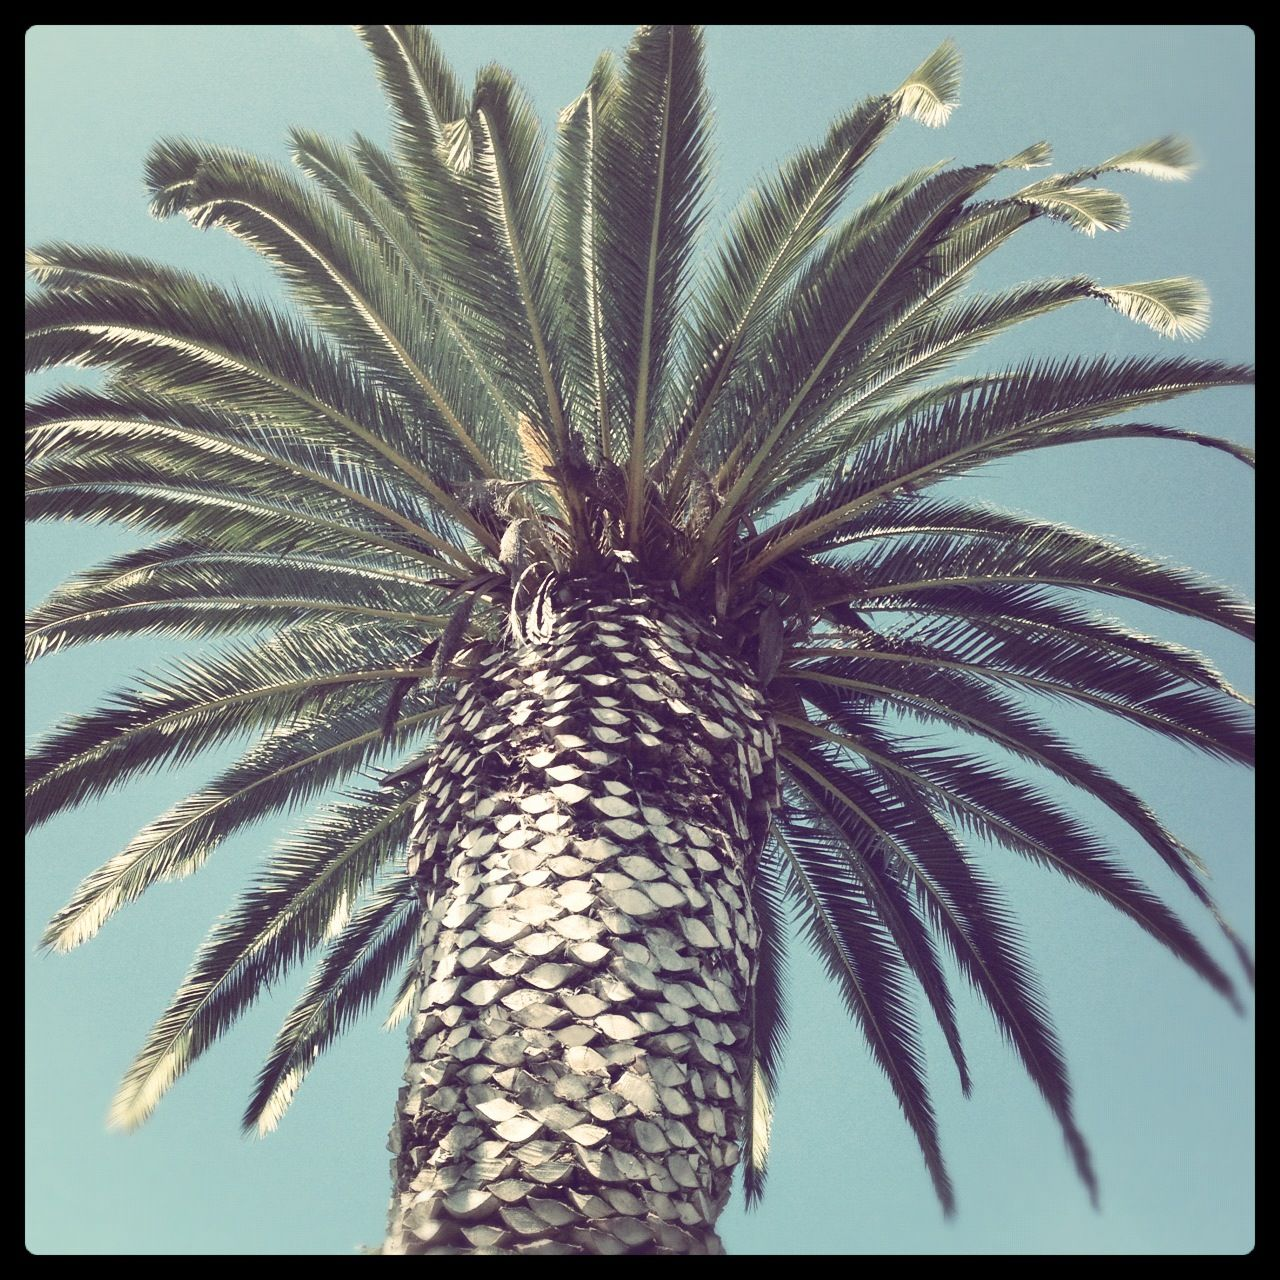 Not all palm trees are created equally. This one, which is located in the Muirlands area of La Jolla, is a beauty!